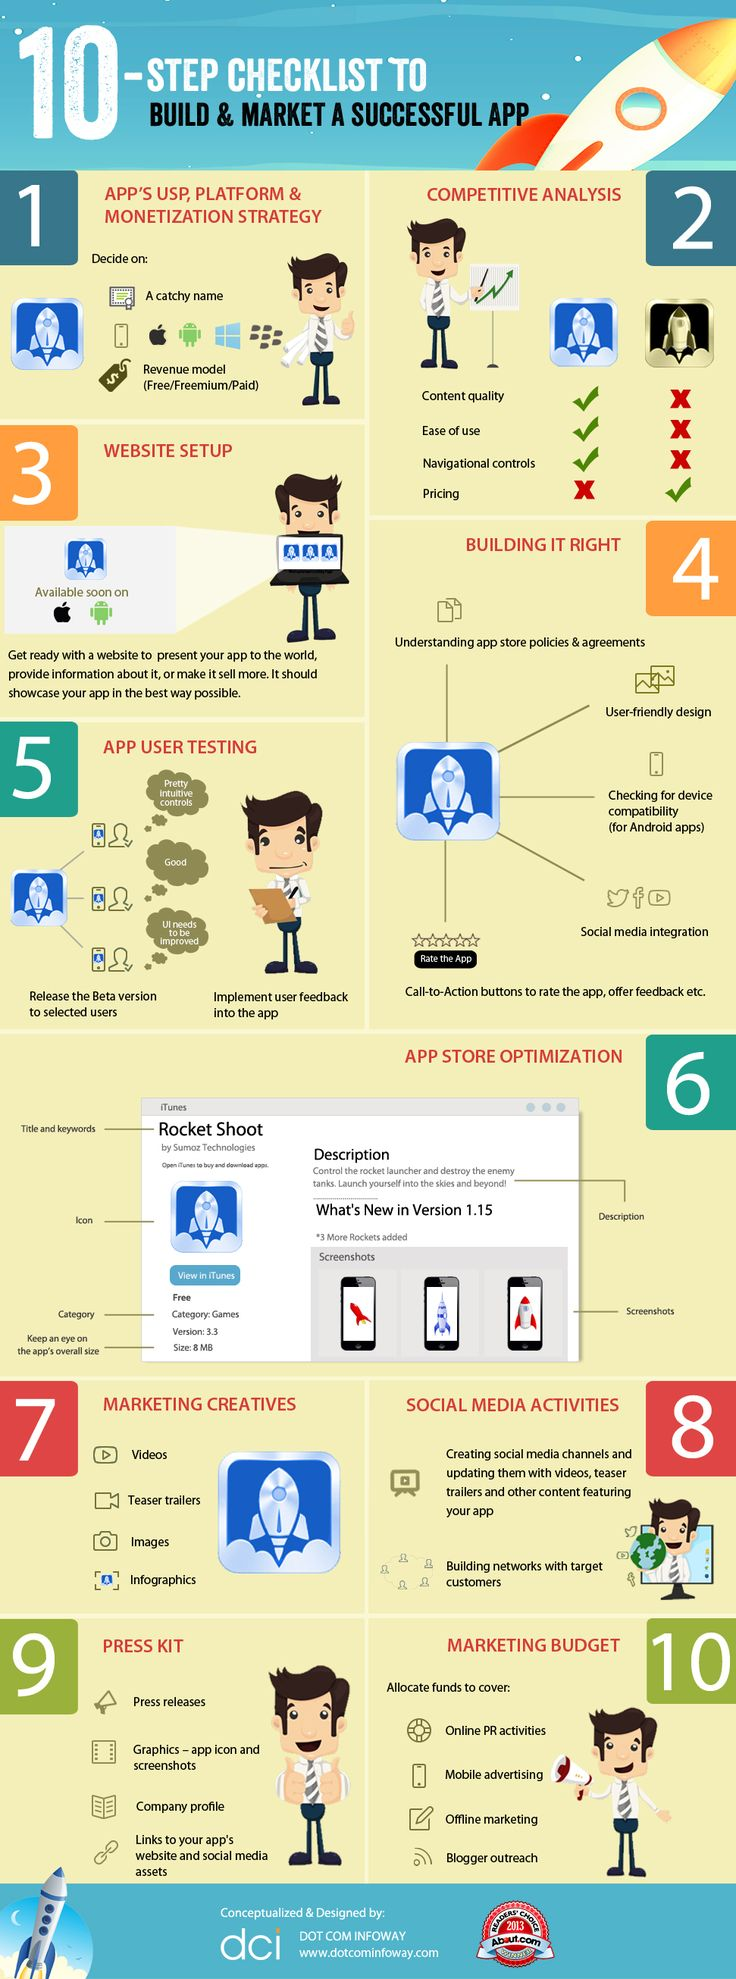 How to Build a Killer App for Your Business (Infographic) | Inc.com https://www.facebook.com/immortaltechnologies #MOBILE #MOBILEAPPLICATION #APPLICATIONDEVELOPMENT